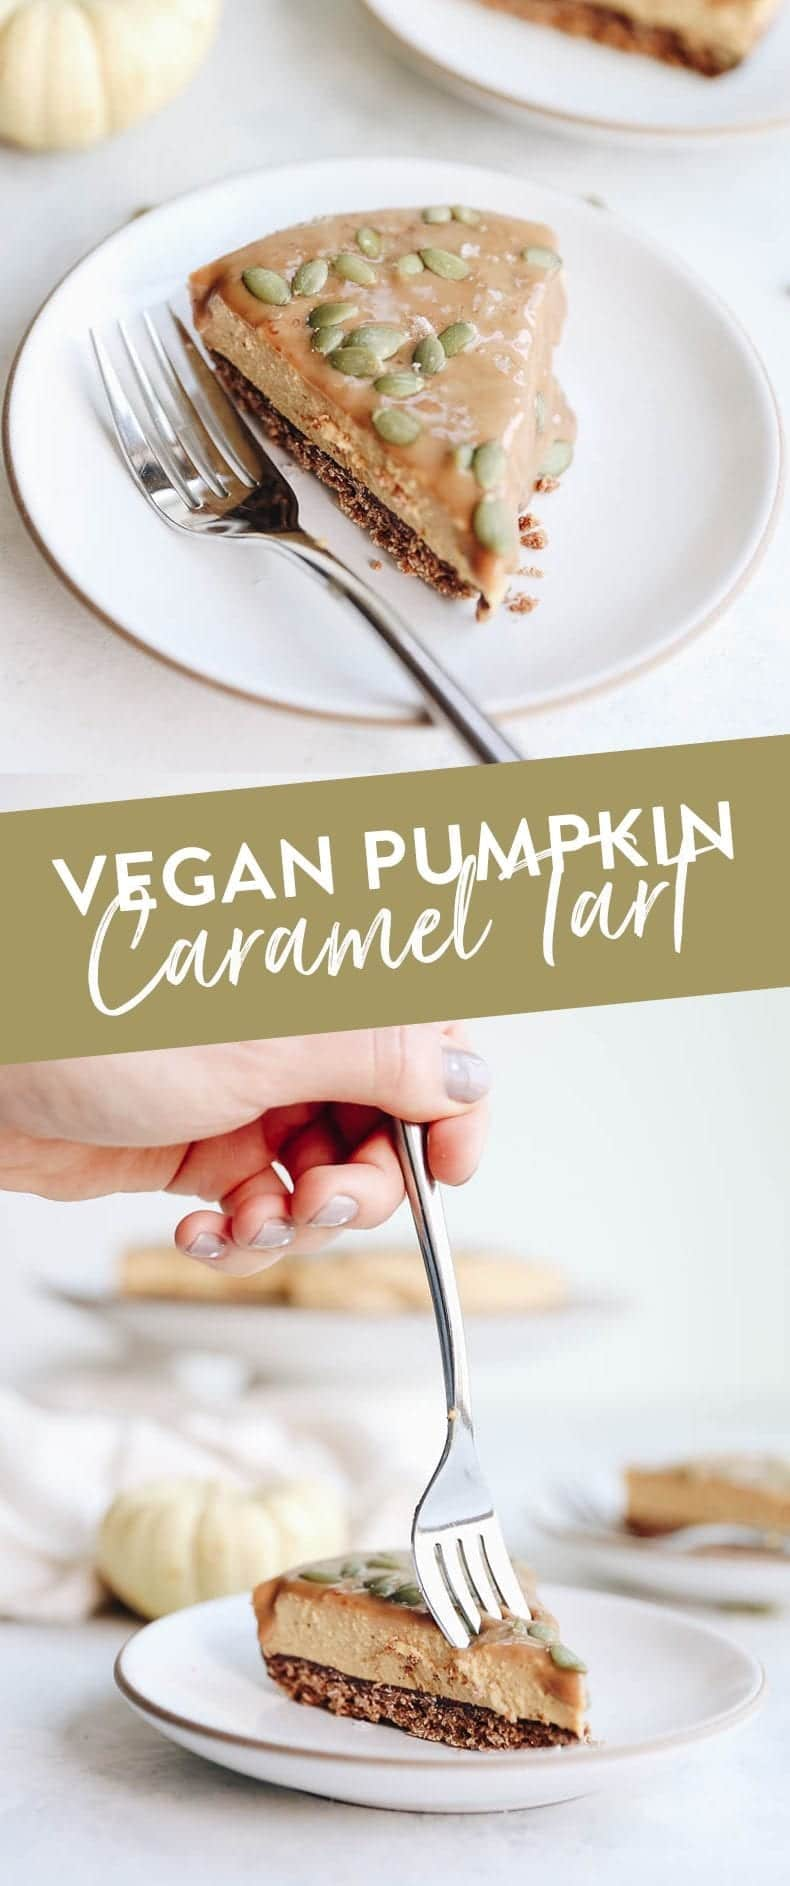 This creamy vegan pumpkin caramel tart gives pumpkin pie a serious run for its money. Made with a simple granola crust and a smooth cashew based pumpkin-filling this dessert recipe will quickly become a winter favorite! #vegan